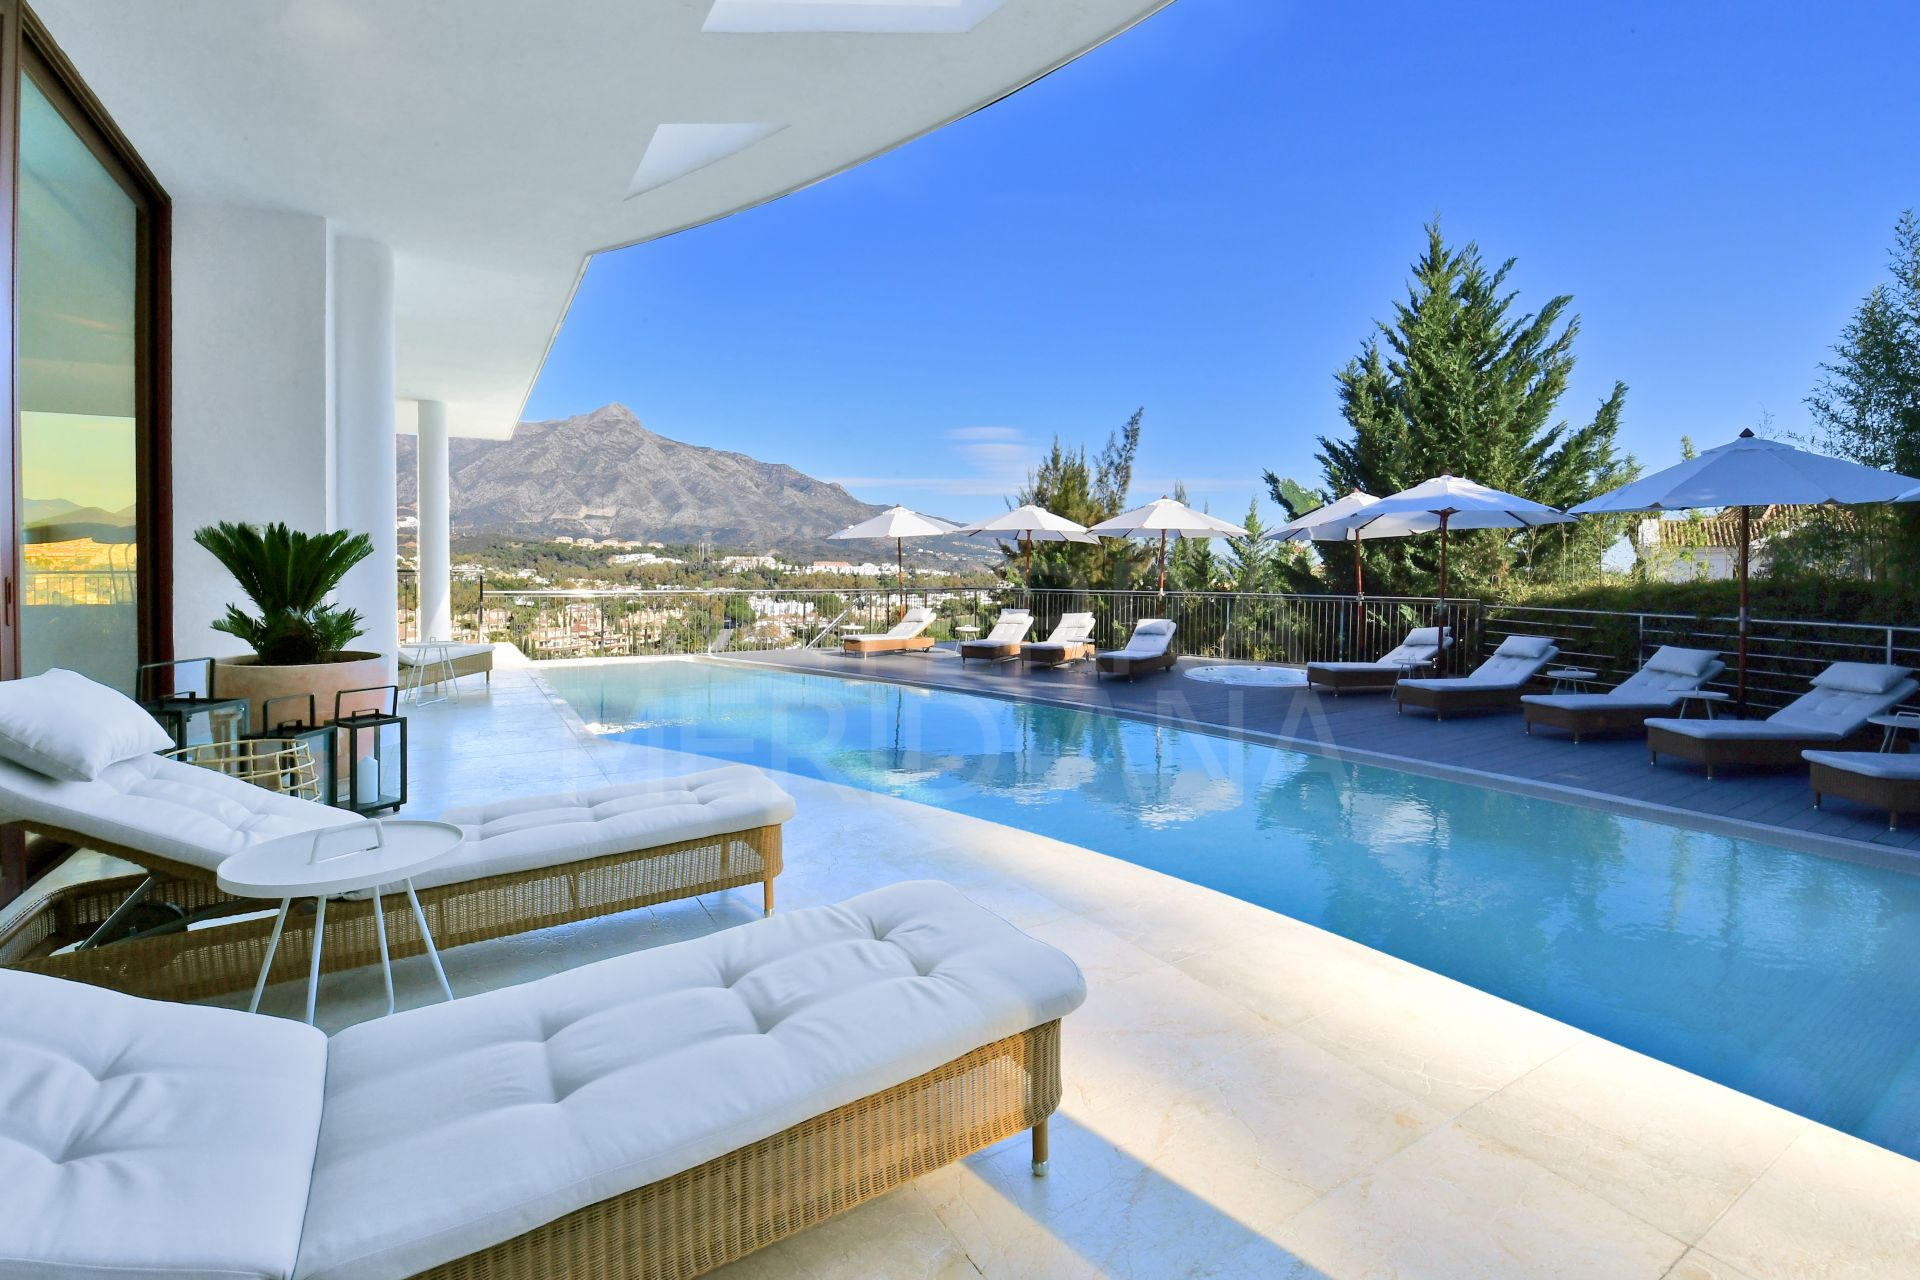 Avantgarde luxury 7 bedroom villa with rooftop terrace and panoramic views for sale in Nueva Andalucia, Marbella